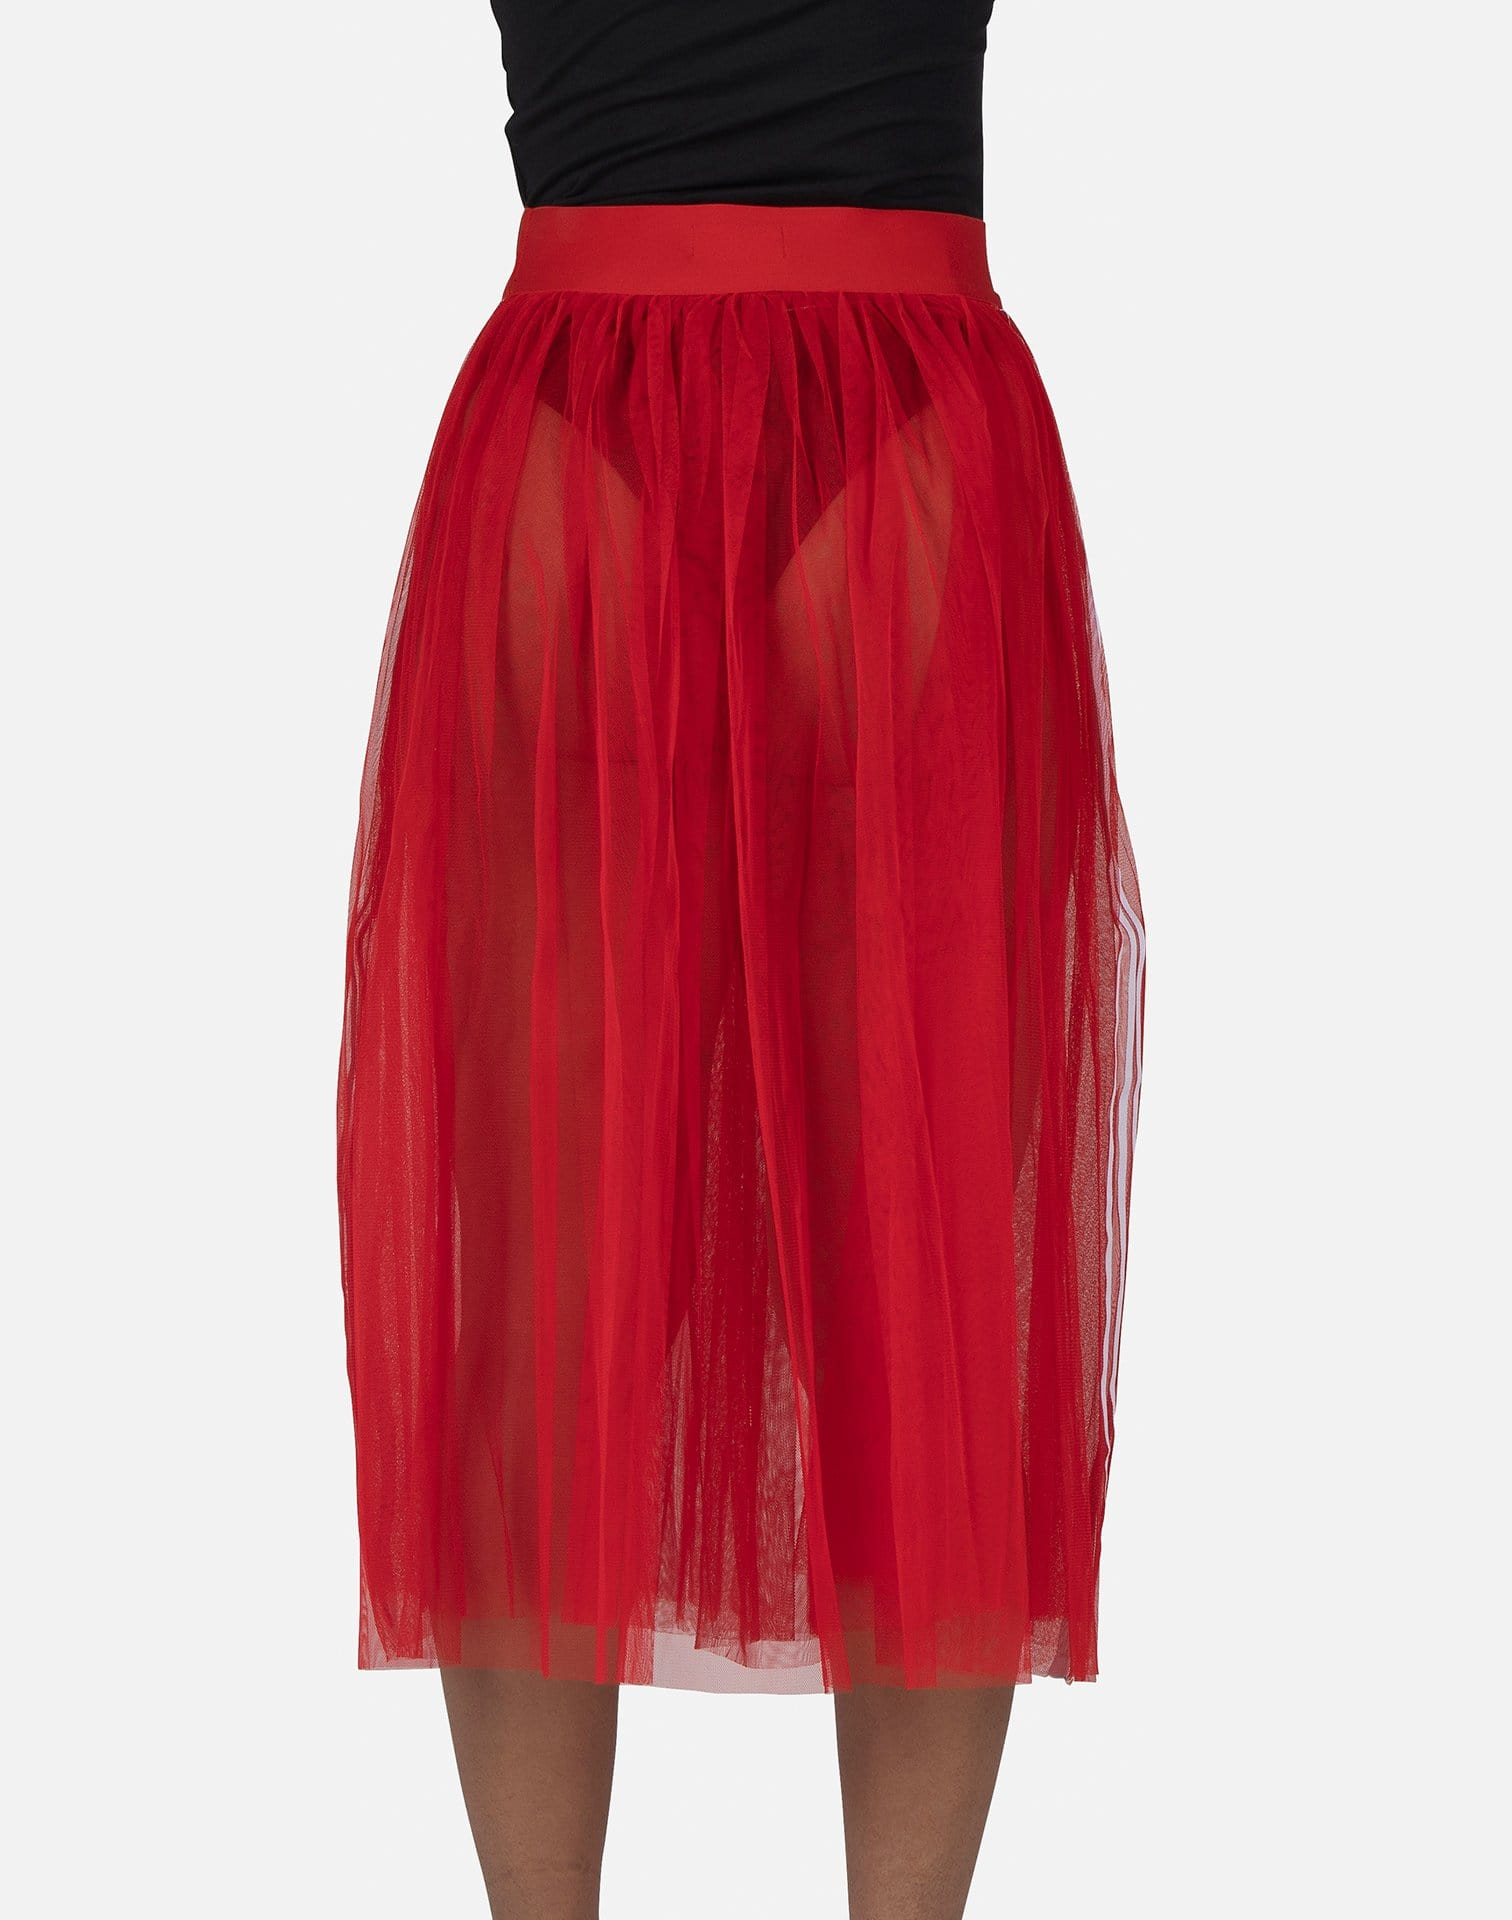 adidas Women's Tulle Skirt